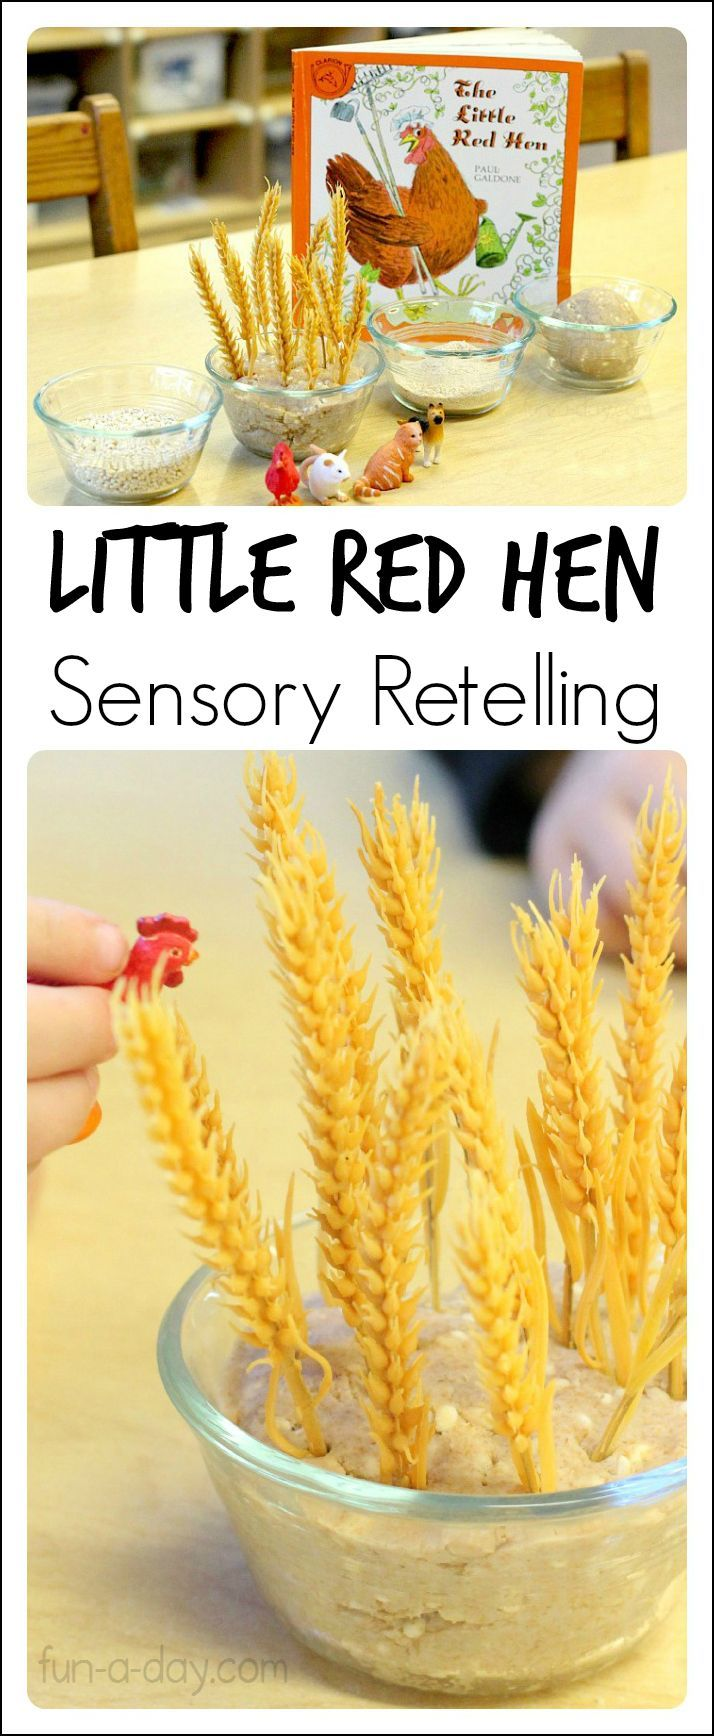 Hands-on retelling of the classic Little Red Hen story!